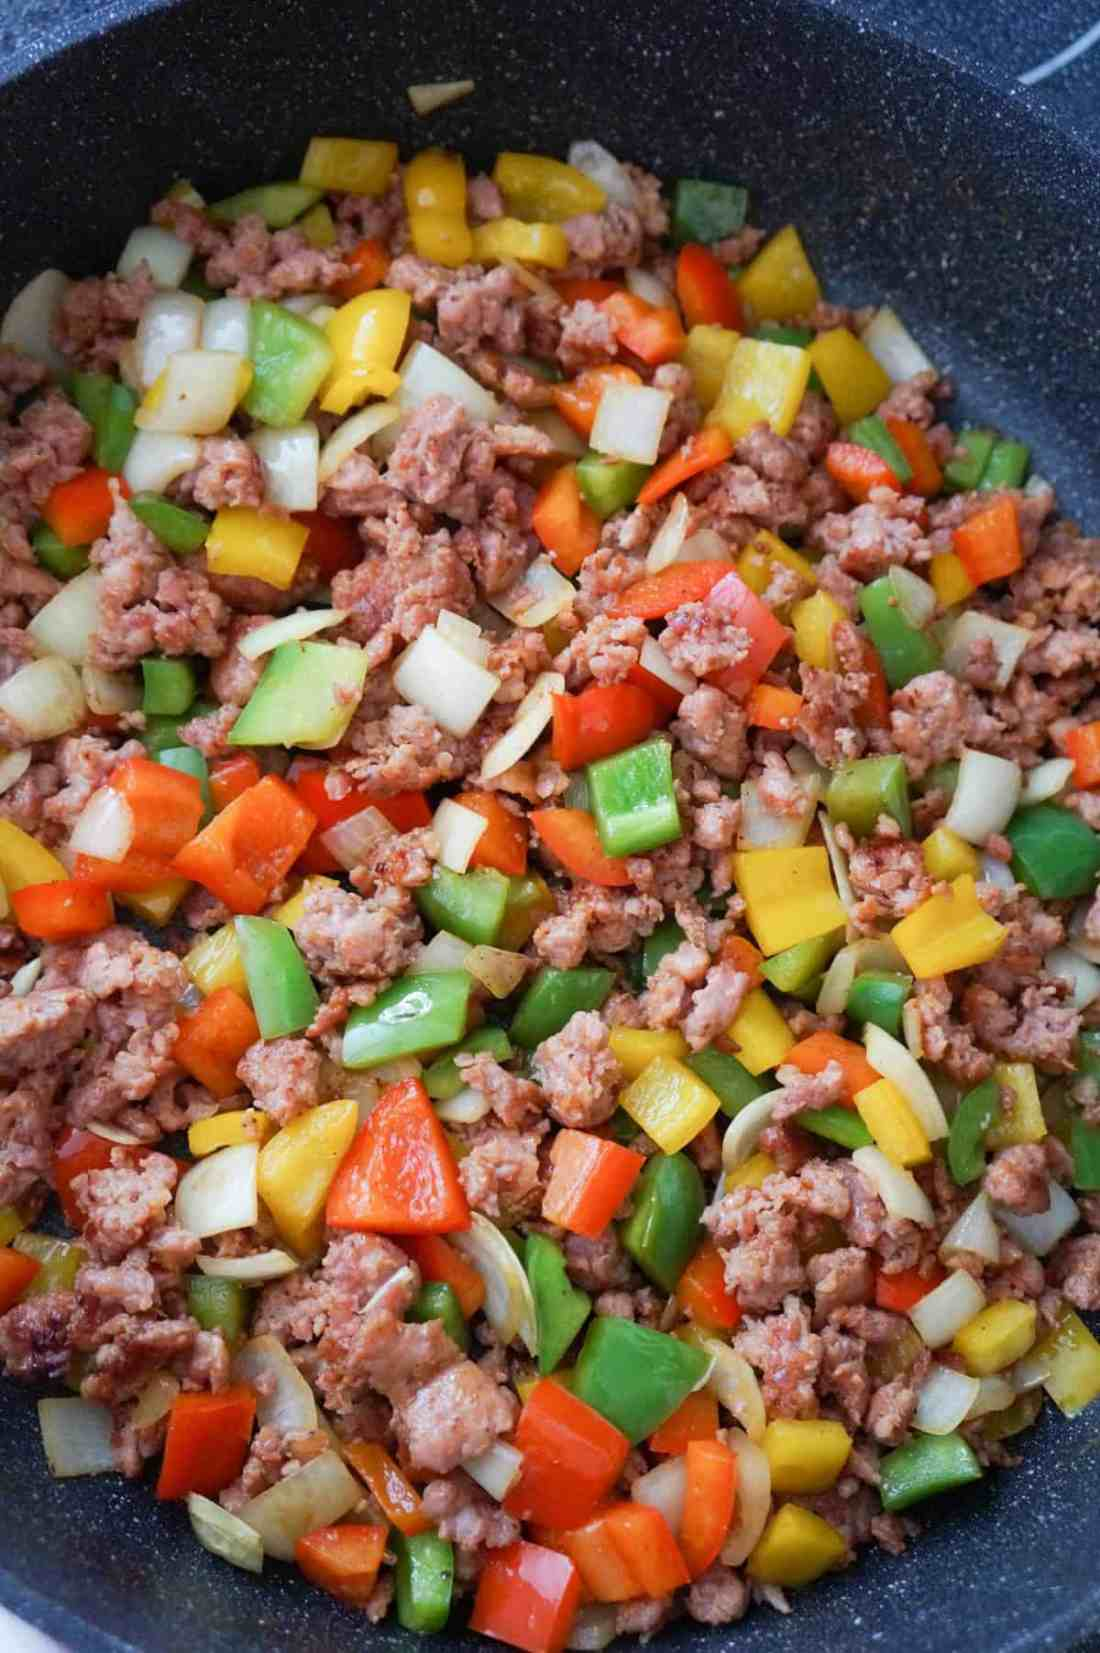 sausage and peppers mixture in a saute pan